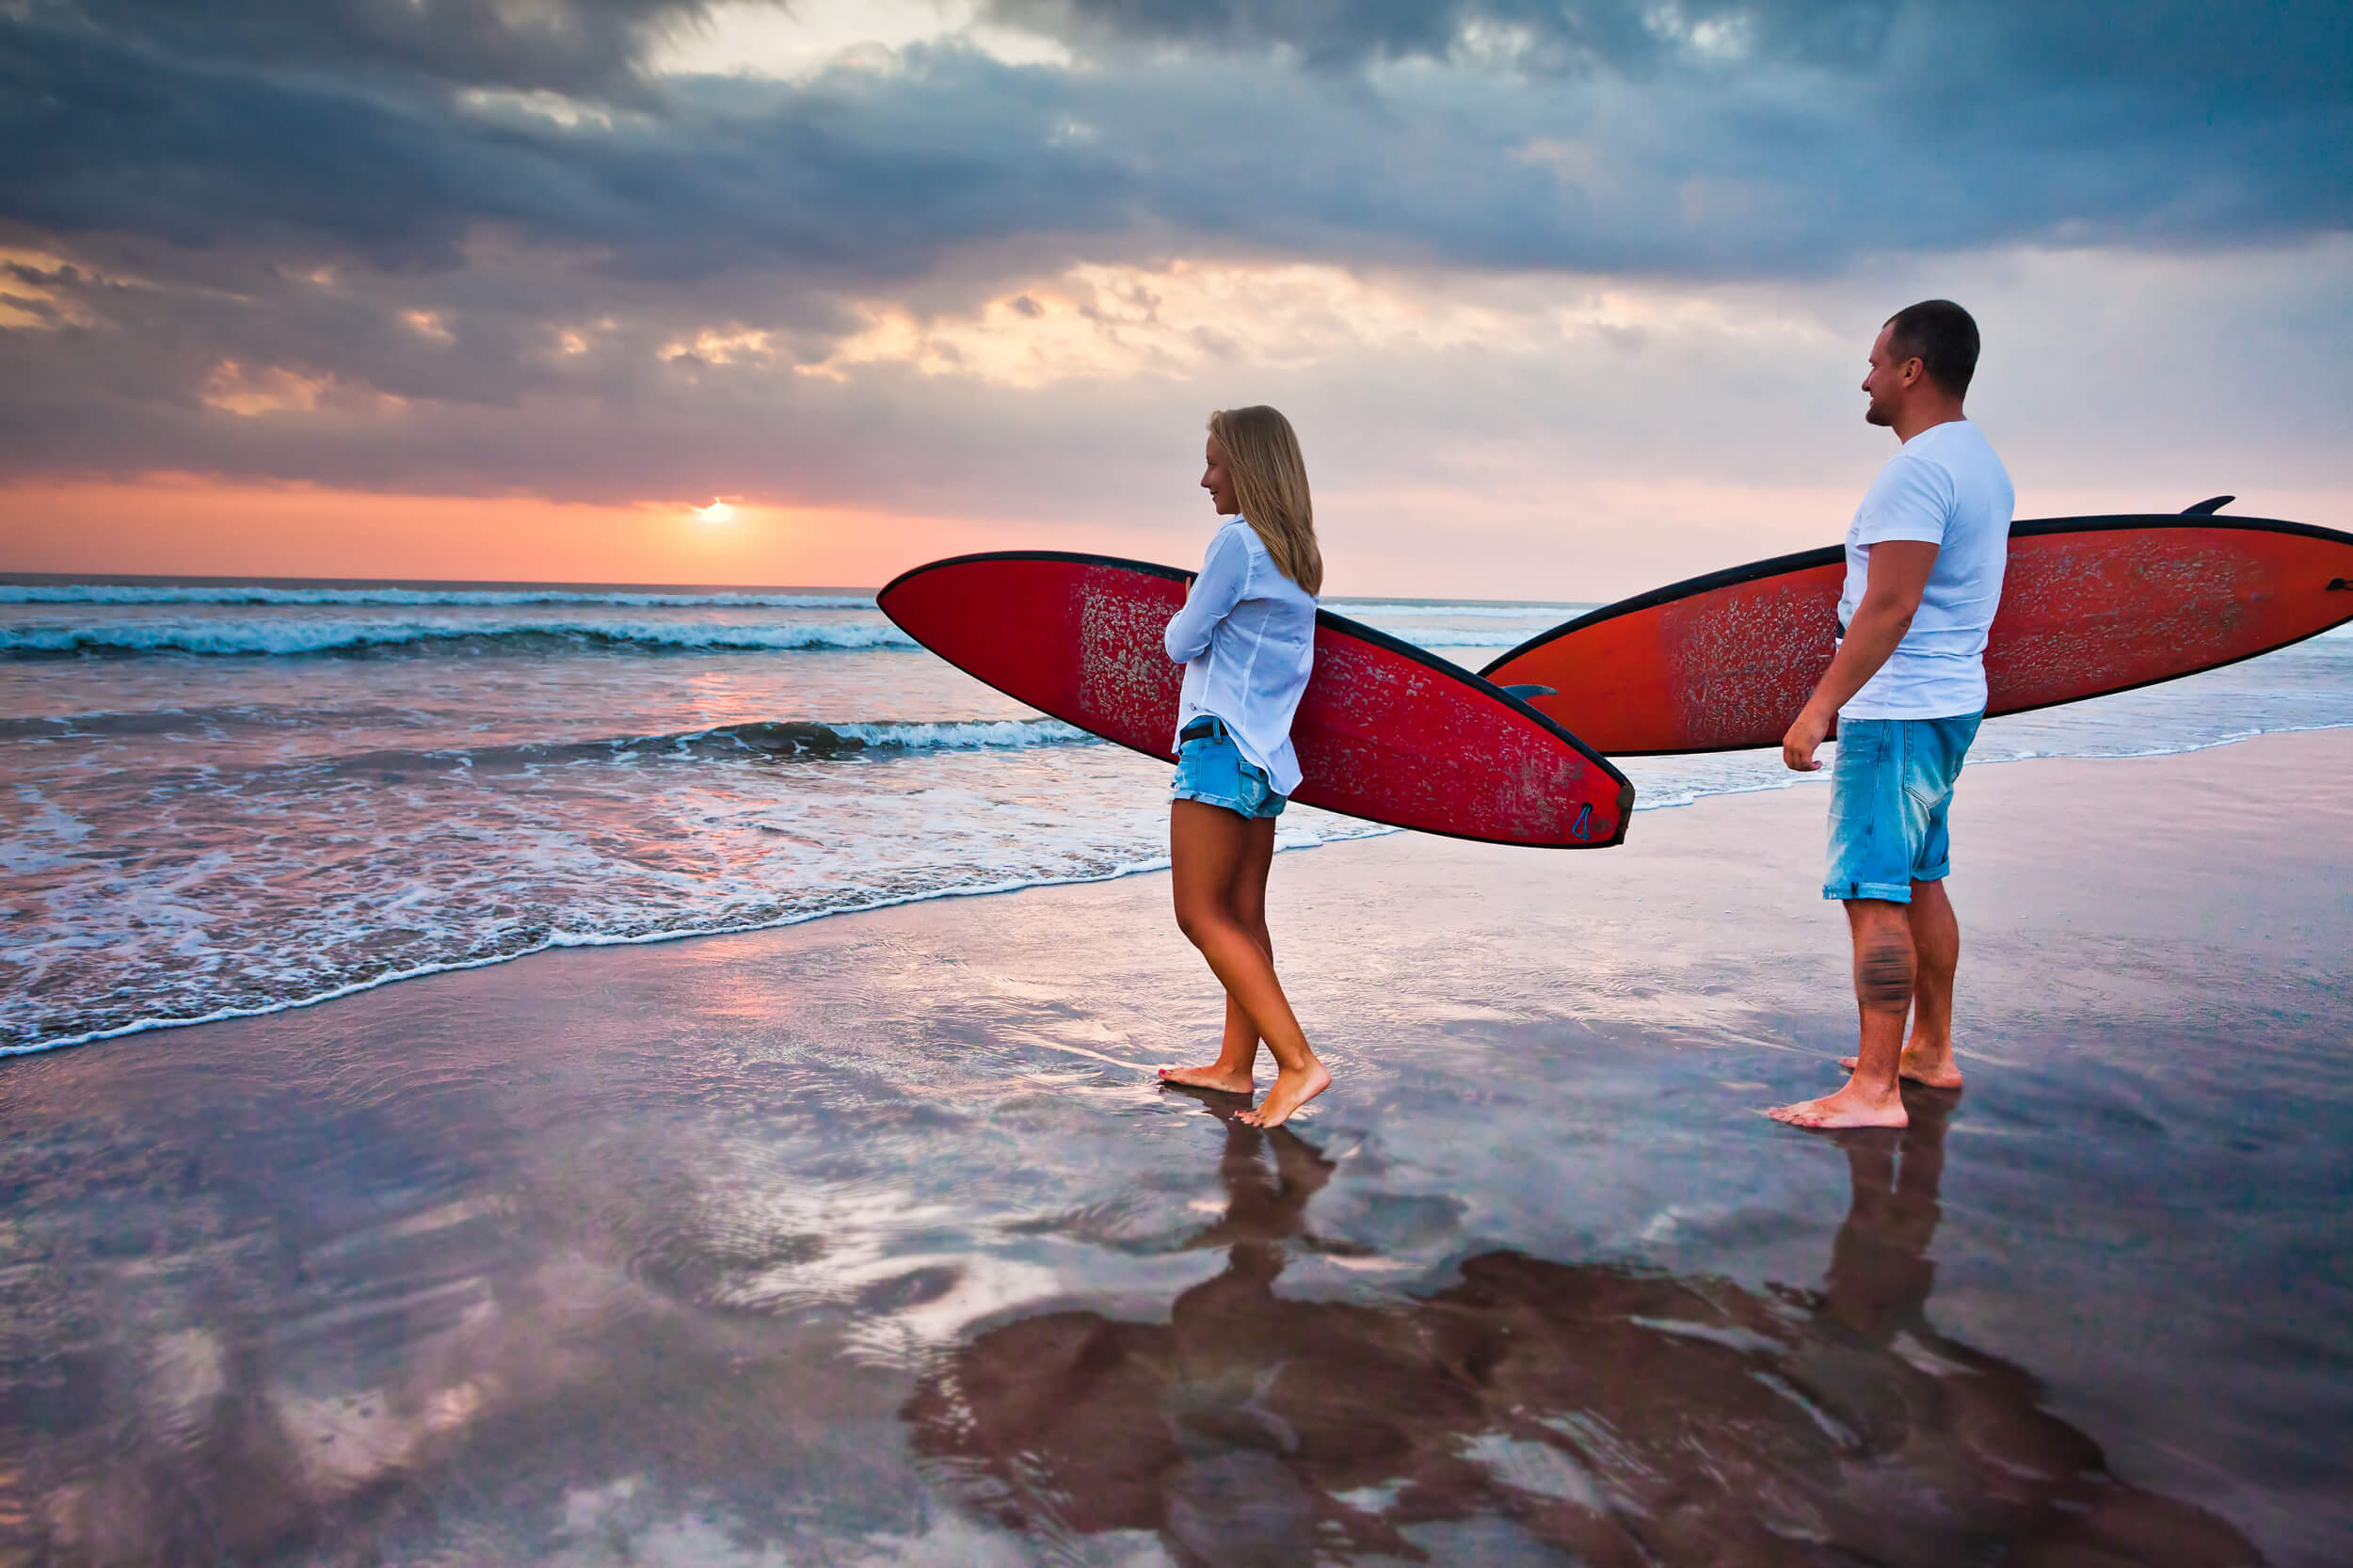 a couple holding surfing board on a beach